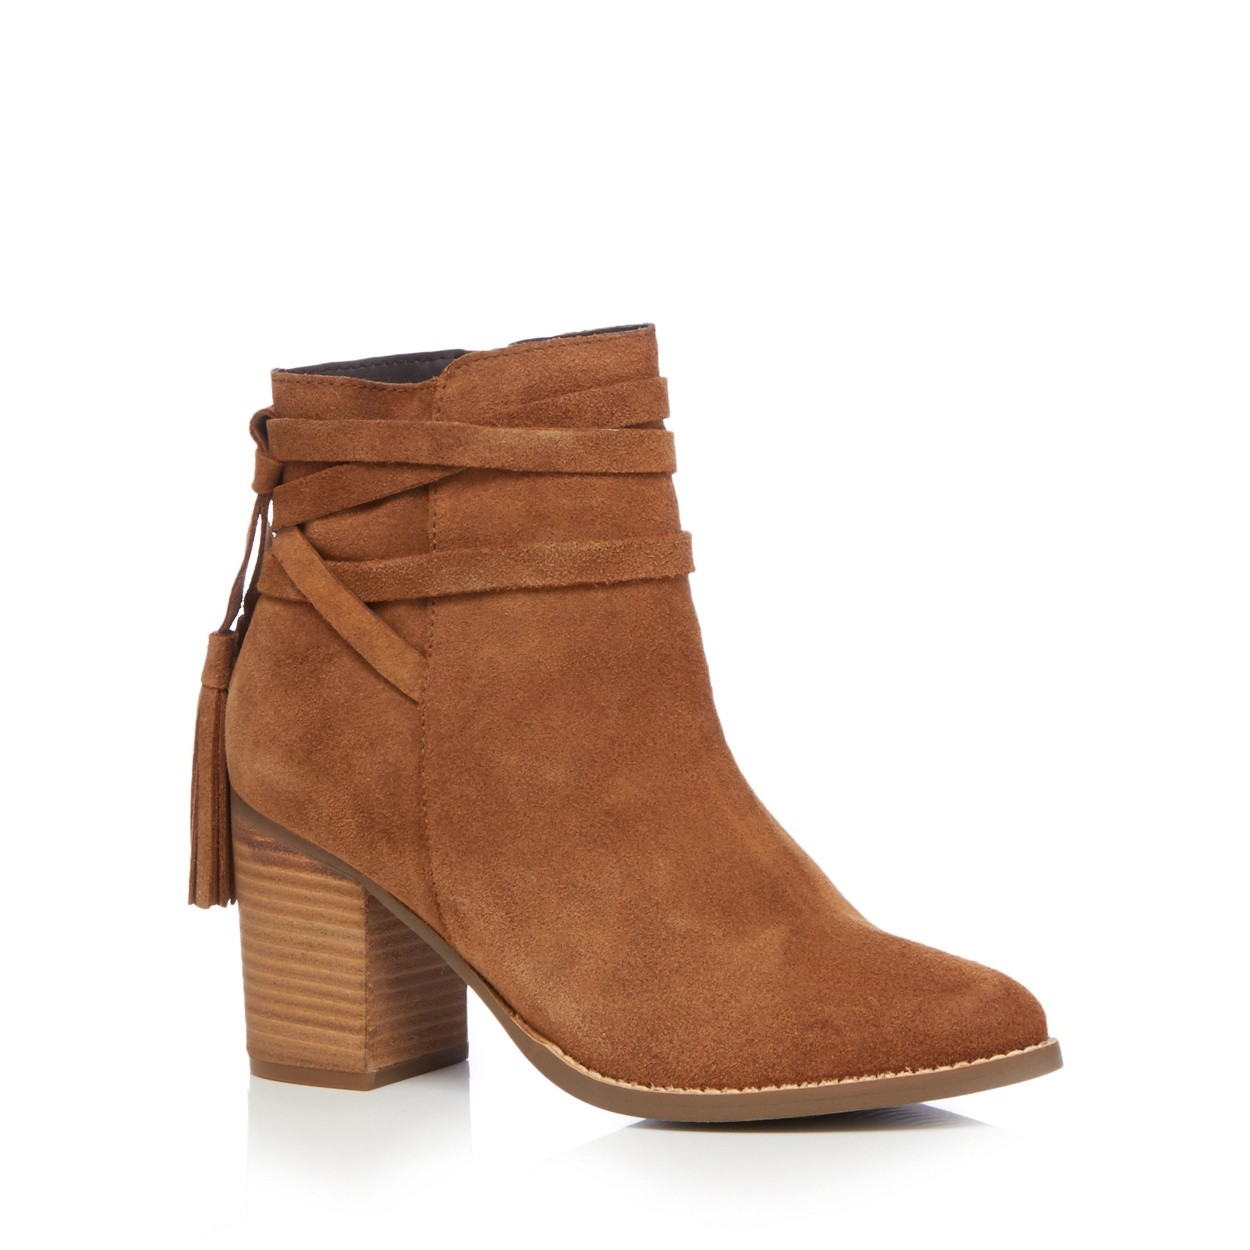 tan - Ankle boots - Women | Debenhams